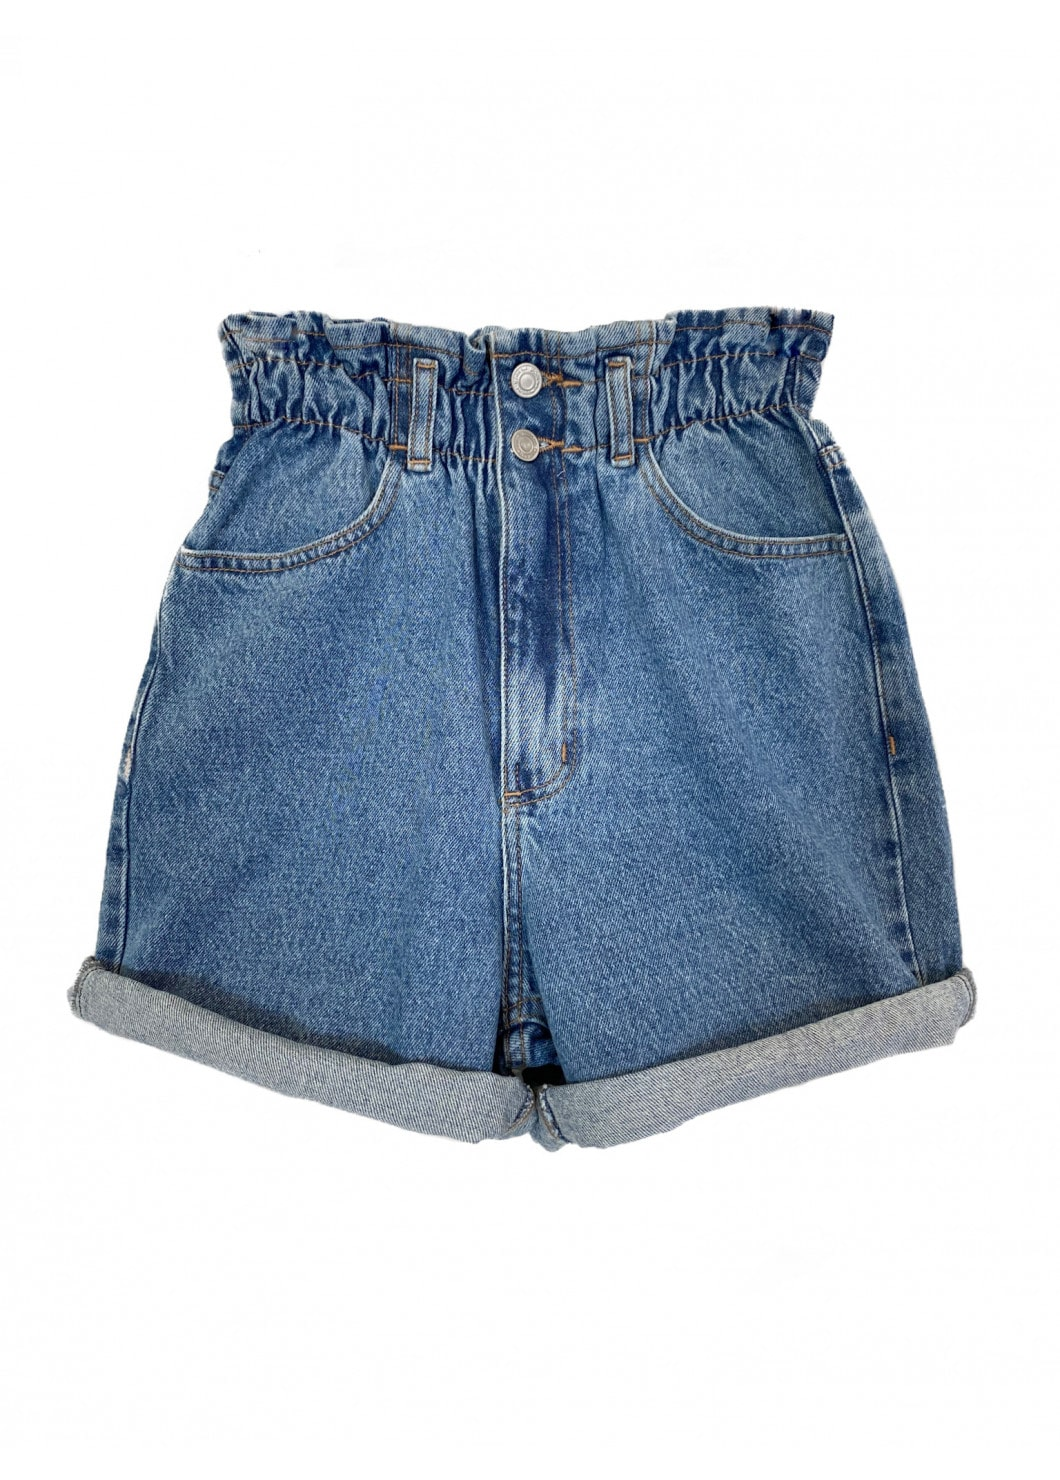 Shorts Jeans MARESIAS